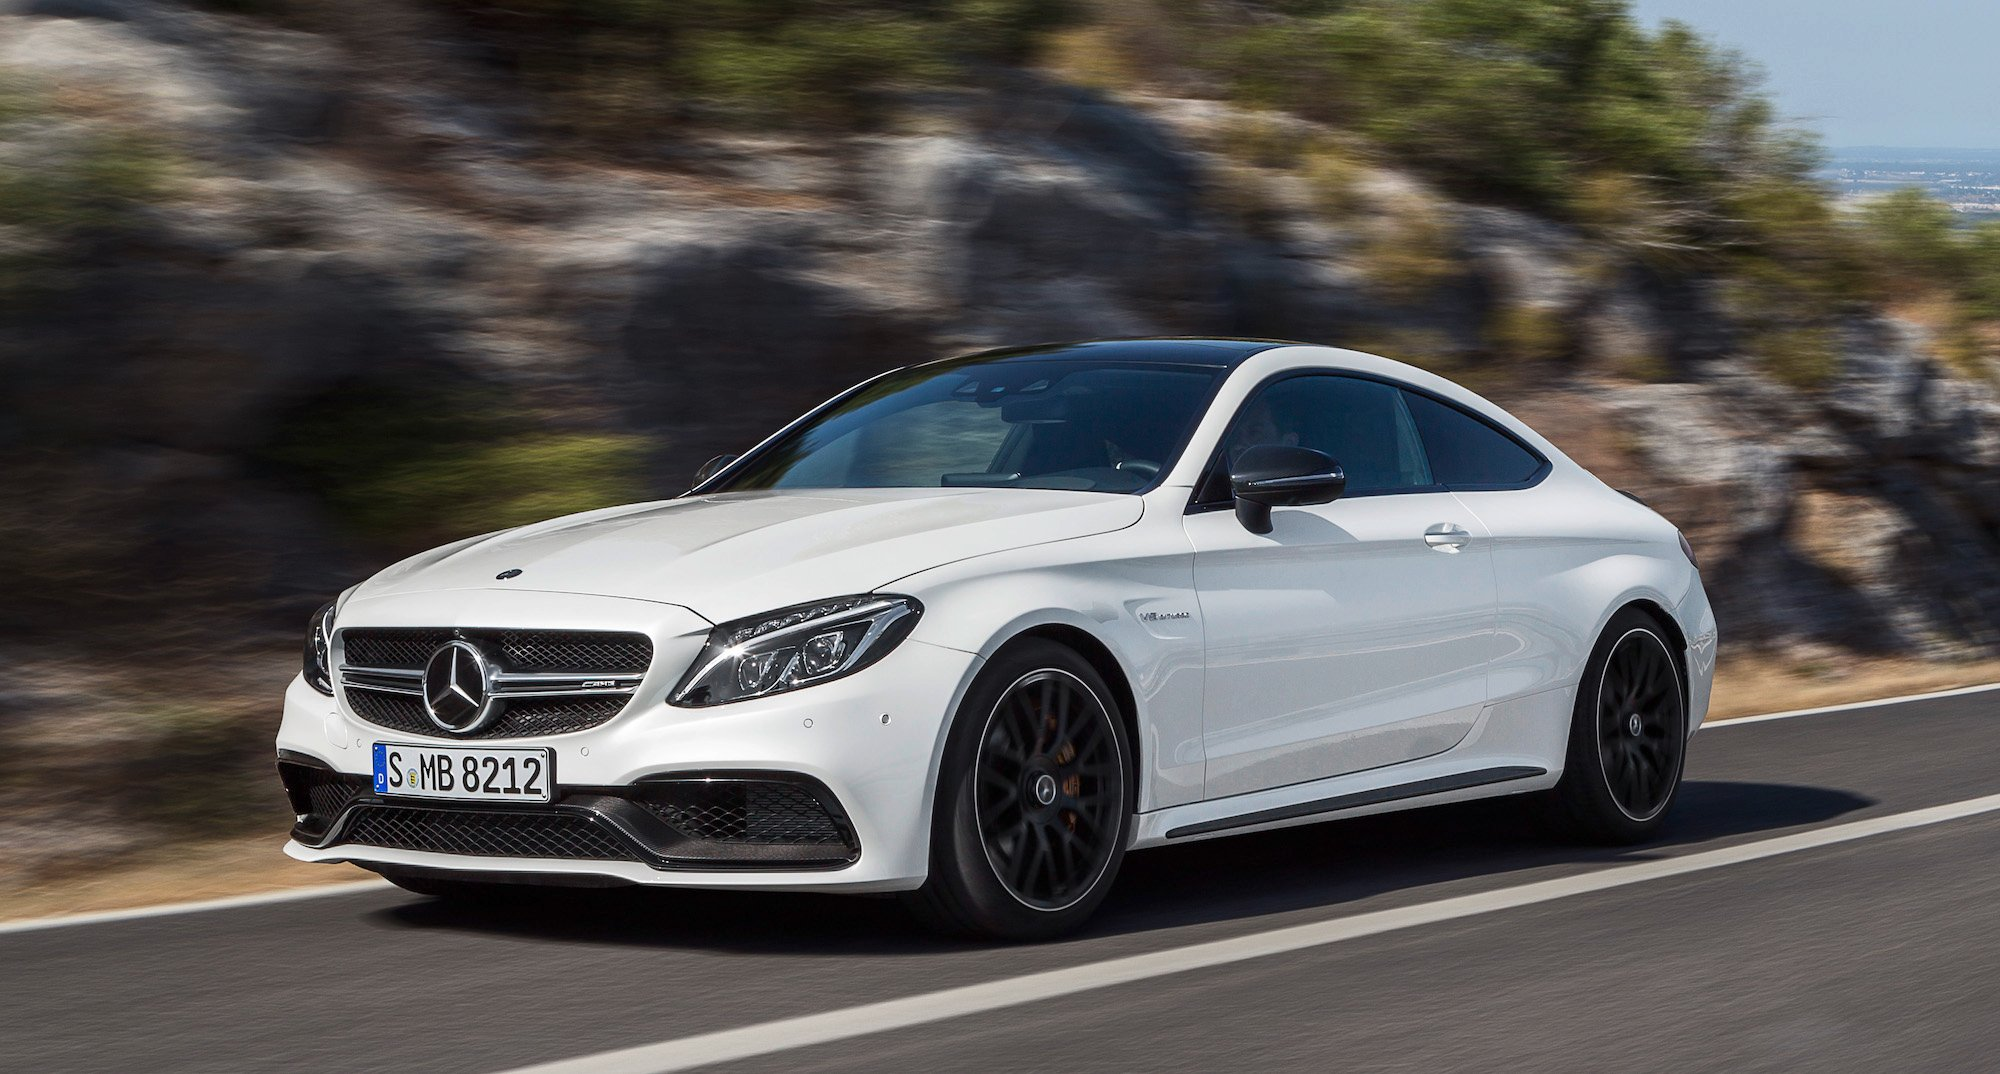 2016 mercedes amg c63 coupe revealed photos caradvice. Black Bedroom Furniture Sets. Home Design Ideas